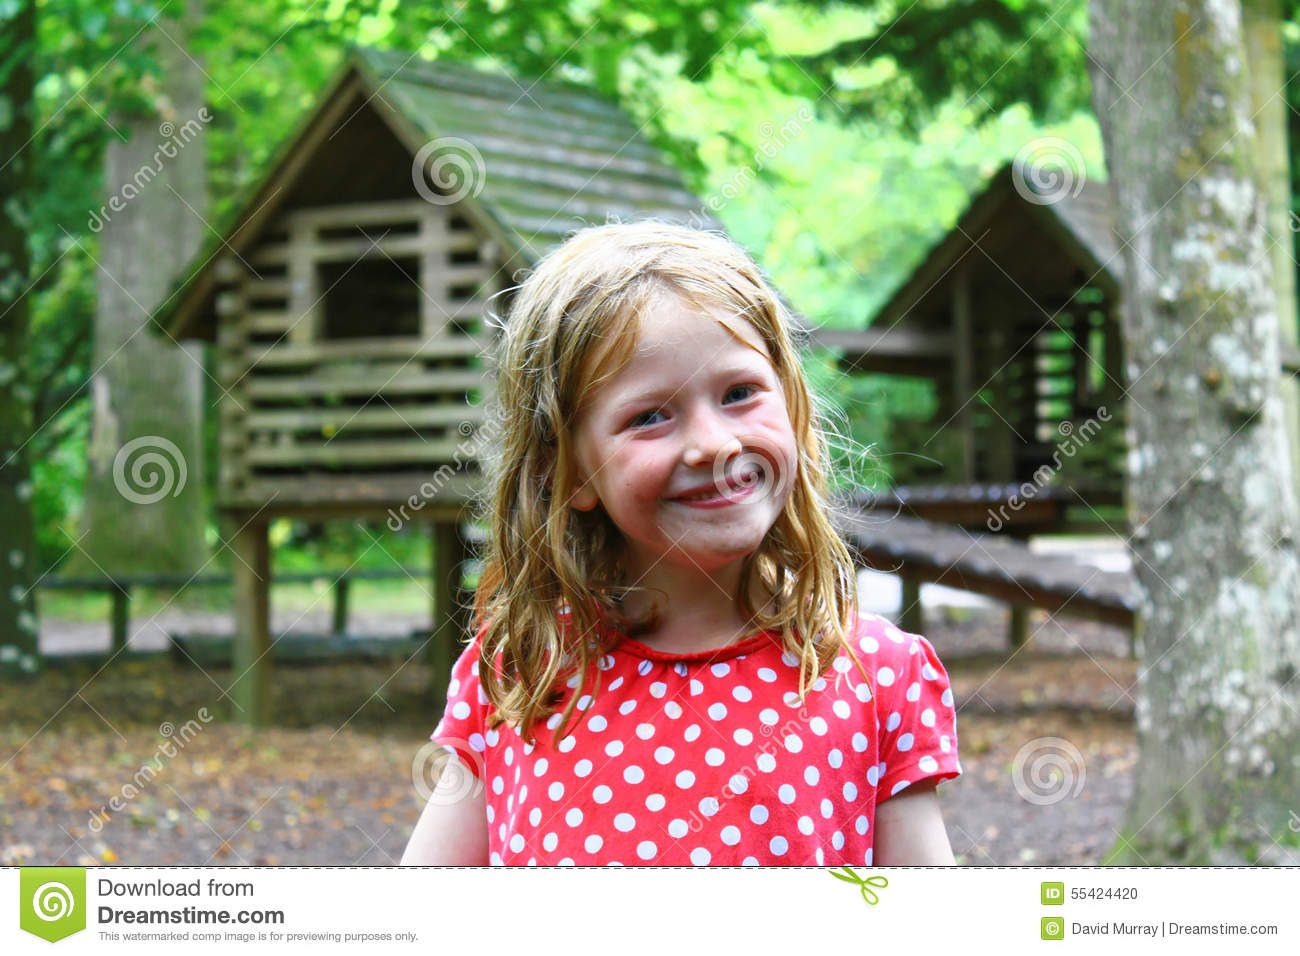 Escala Seattle Floor Plans A Smiling Dreamstime Young Girl Outdoors Smiling Young